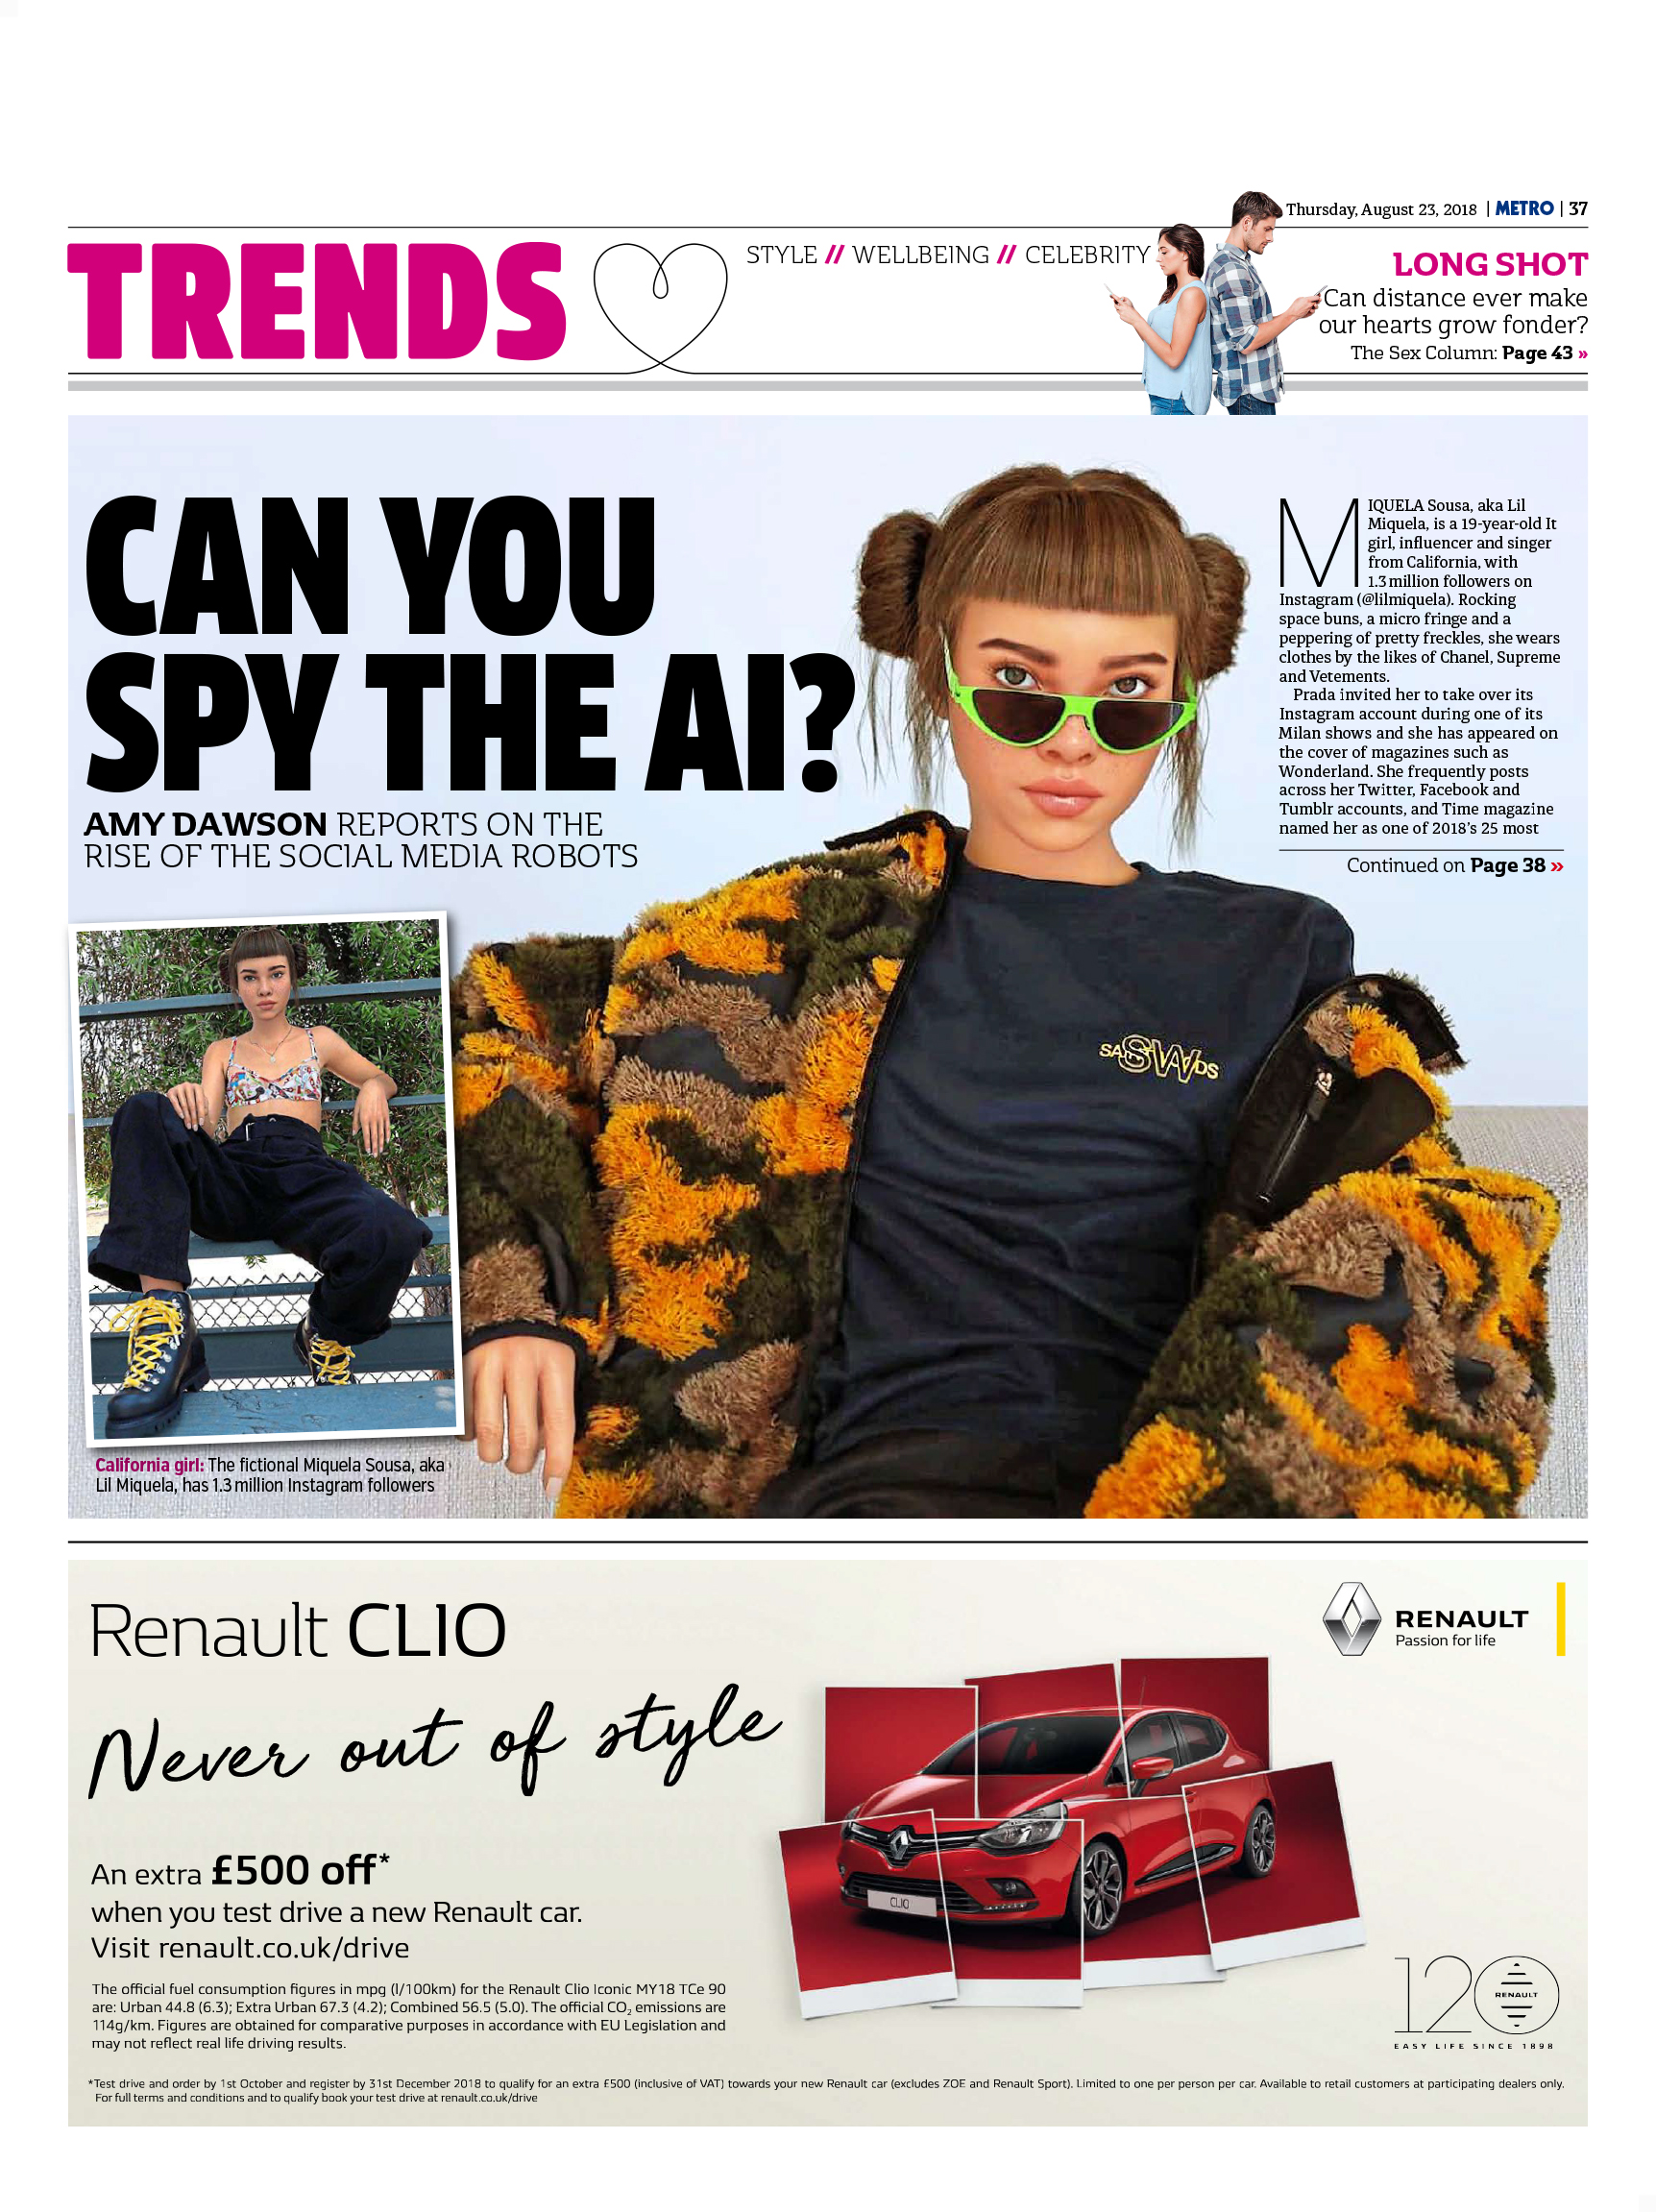 Can You Spy The AI? (Metro, 23rd Aug 2018)